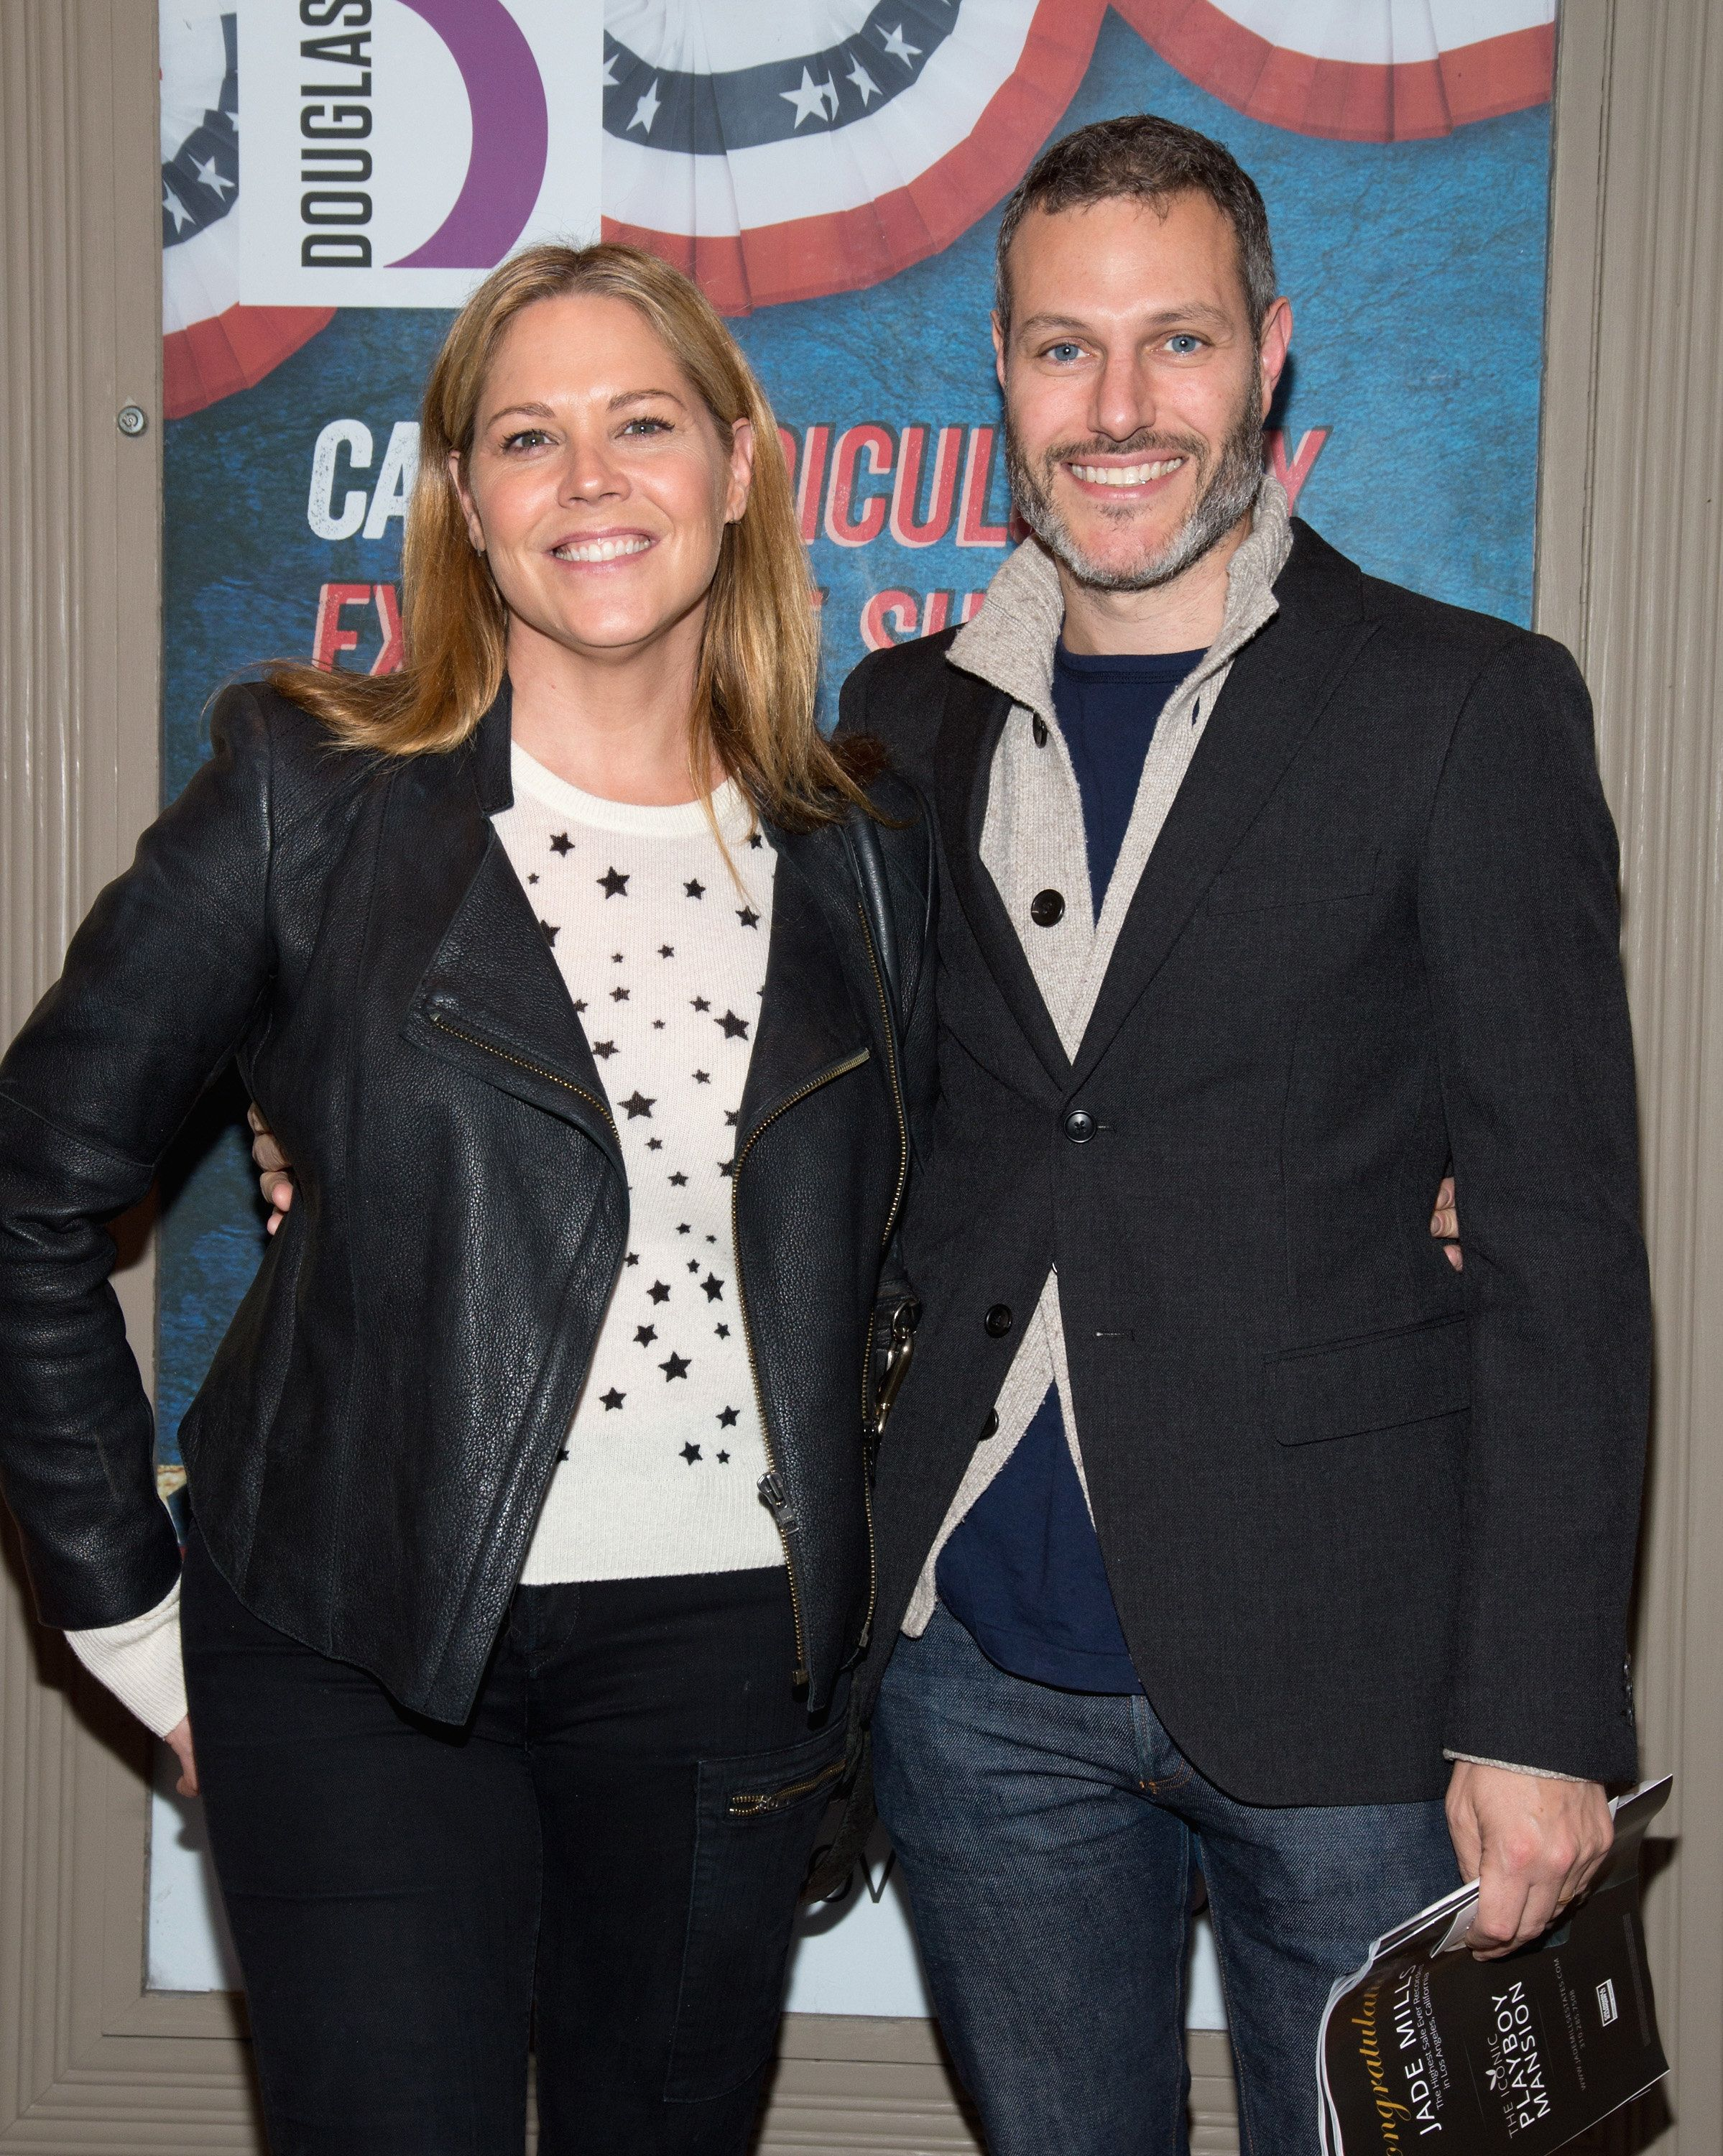 CULVER CITY, CA - OCTOBER 30:  Actress Mary McCormack and Director/Producer Michael Morris attend the premiere of Jon Robin Baitz's 'Vicuna' at Kirk Douglas Theatre on October 30, 2016 in Culver City, California.  (Photo by Tara Ziemba/FilmMagic)